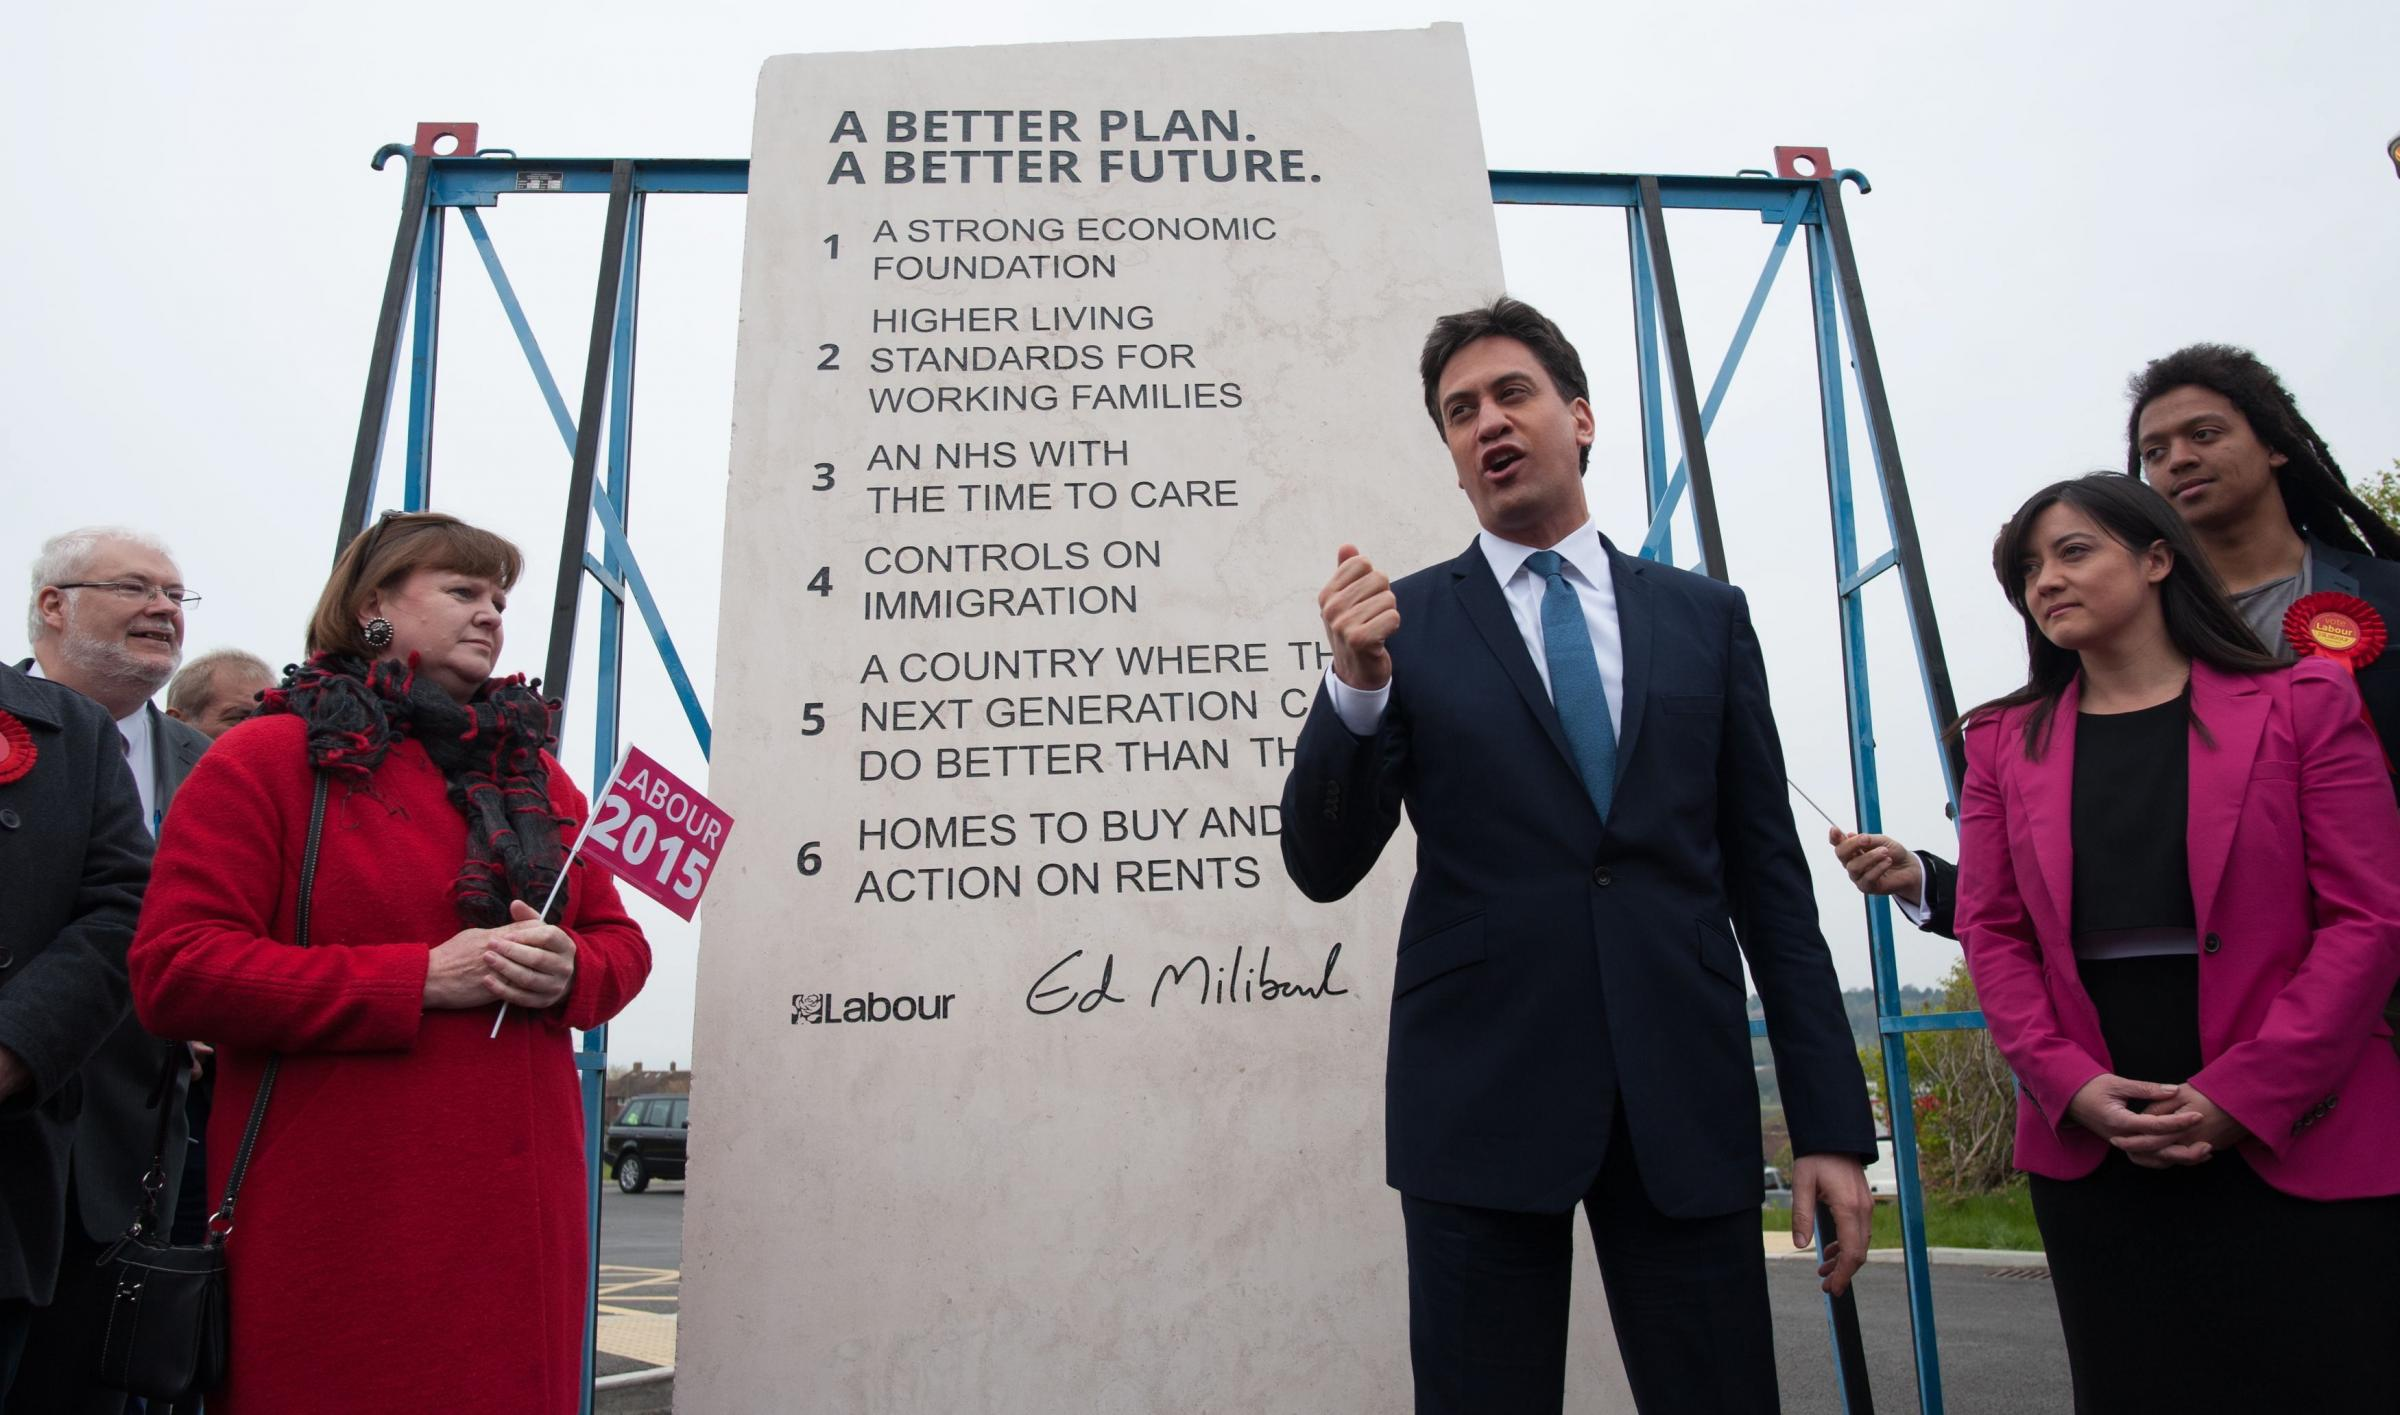 Time for a reminder of the solemn pledges made before past votes